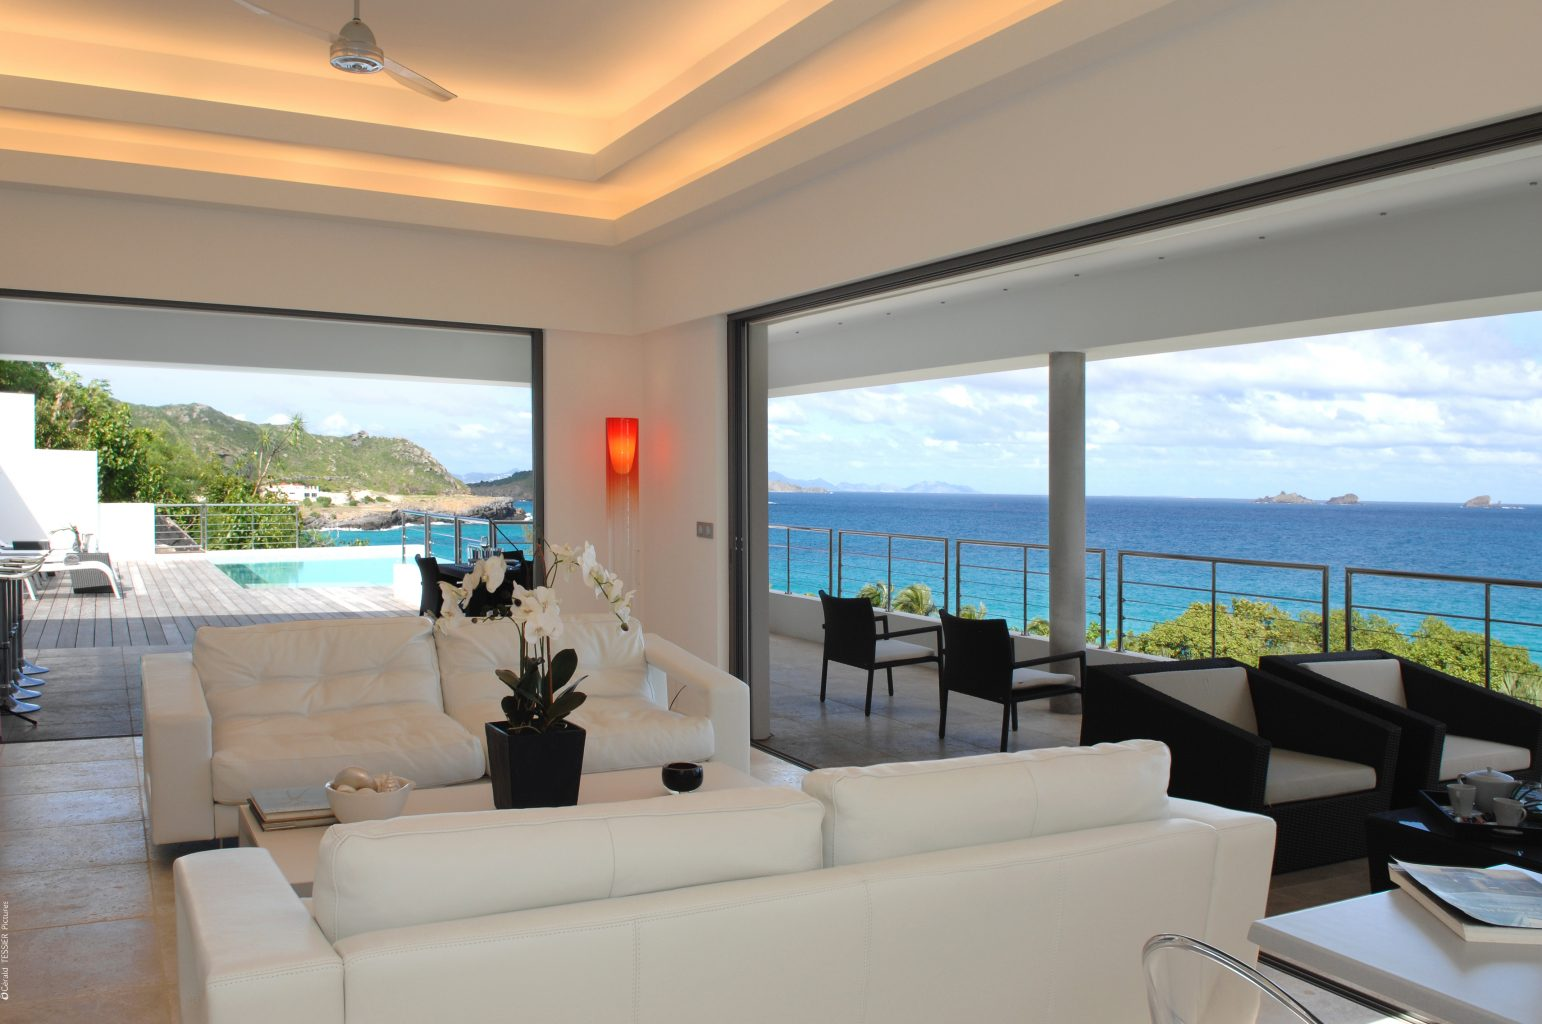 Villa Matajagui - Spacious and Modern Villa for Rent St Barth Located Few Minutes Away from Bar and Restaurants - Main Area